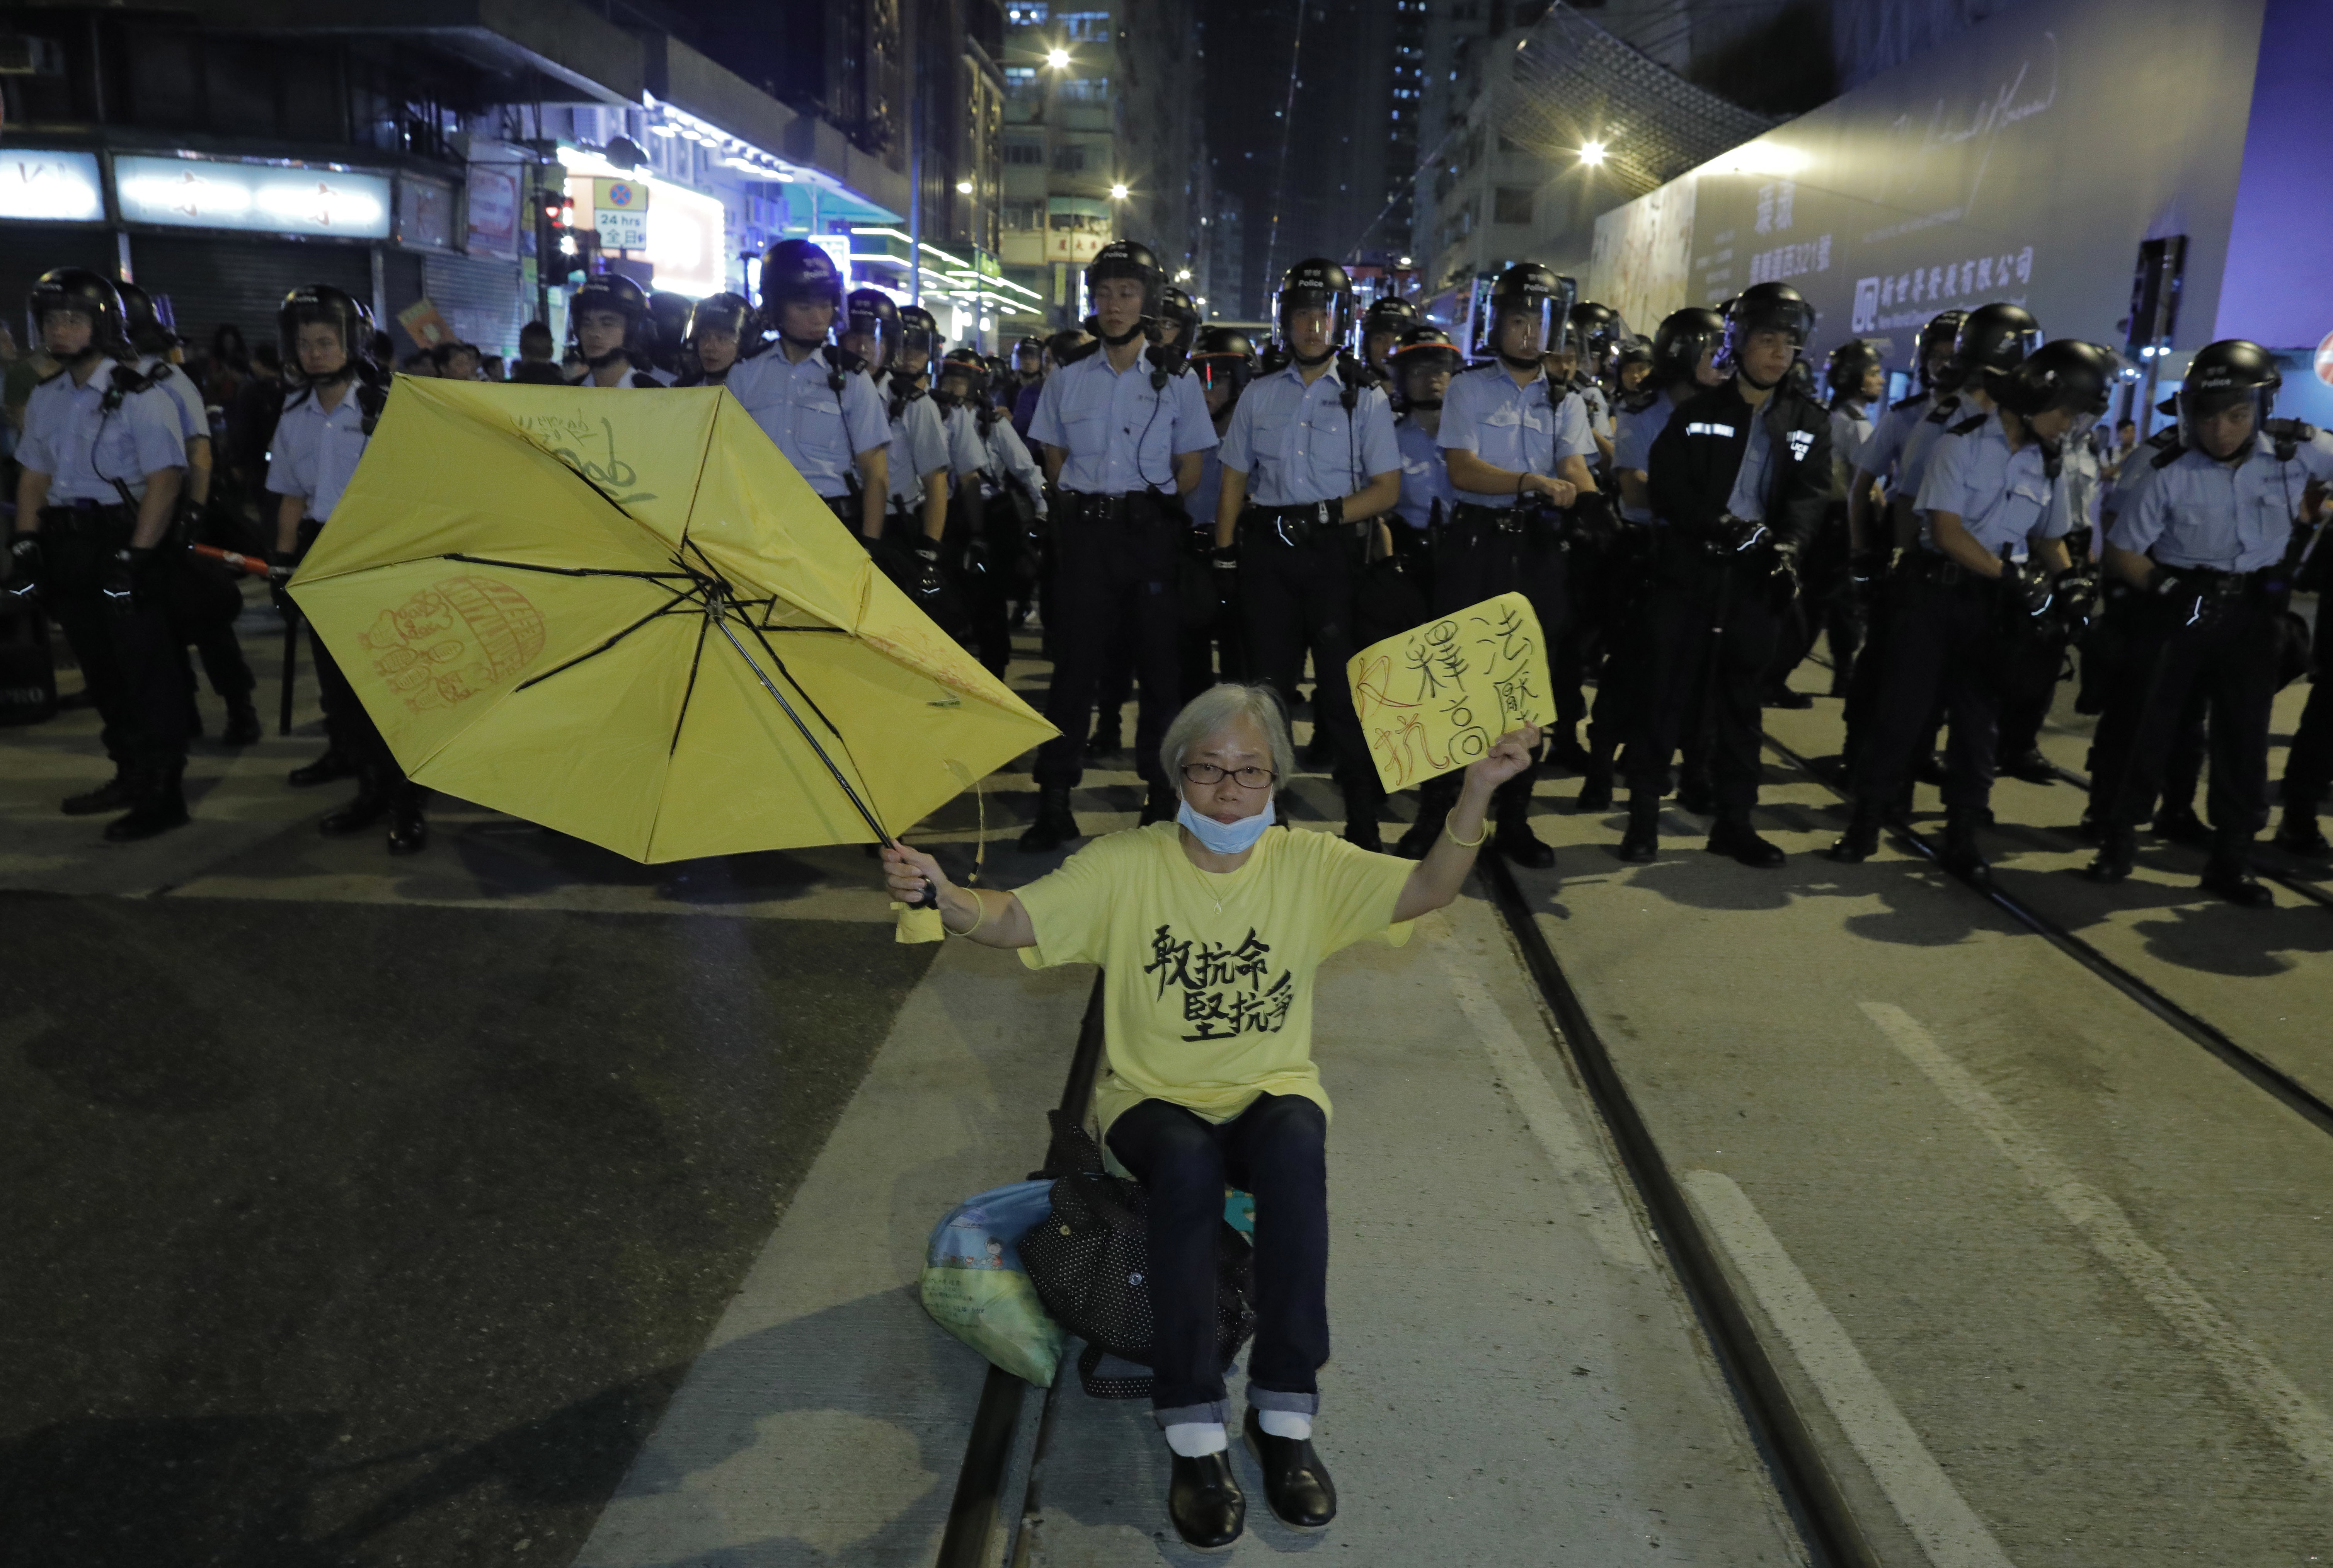 A protester raises an umbrella sitting in front of a line of police officers outside the Chinese central government's liaison office in Hong Kong, Sunday, Nov. 6, 2016. Thousands of protesters marched in Hong Kong on Sunday, demanding that China's central government stay out of a political dispute in the southern Chinese city after Beijing indicated that it would intervene to deter pro-independence advocates. (AP Photo/Vincent Yu)